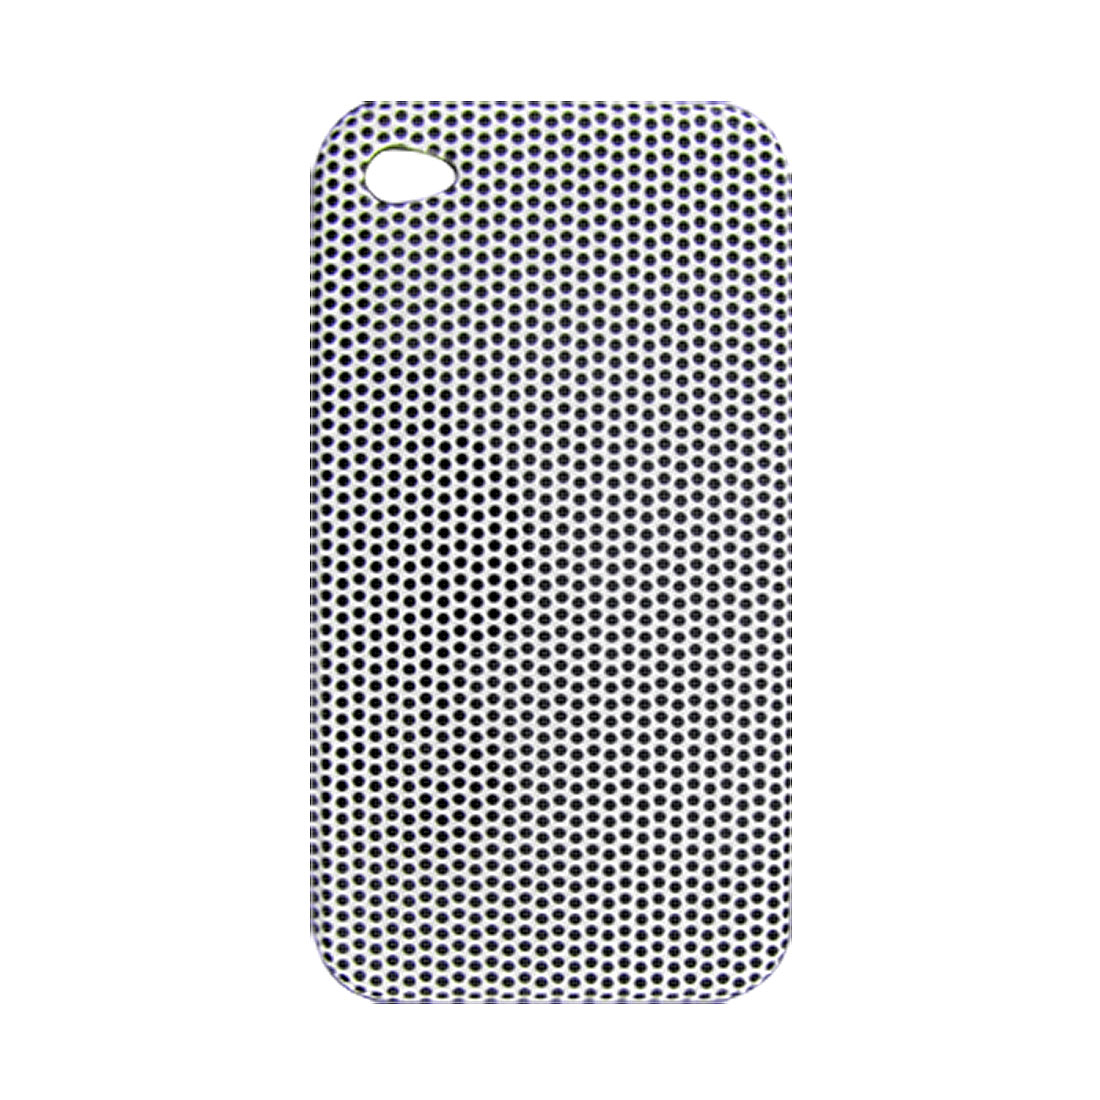 White Plastic Black Dot Pattern Back Case for iPhone 4 4G